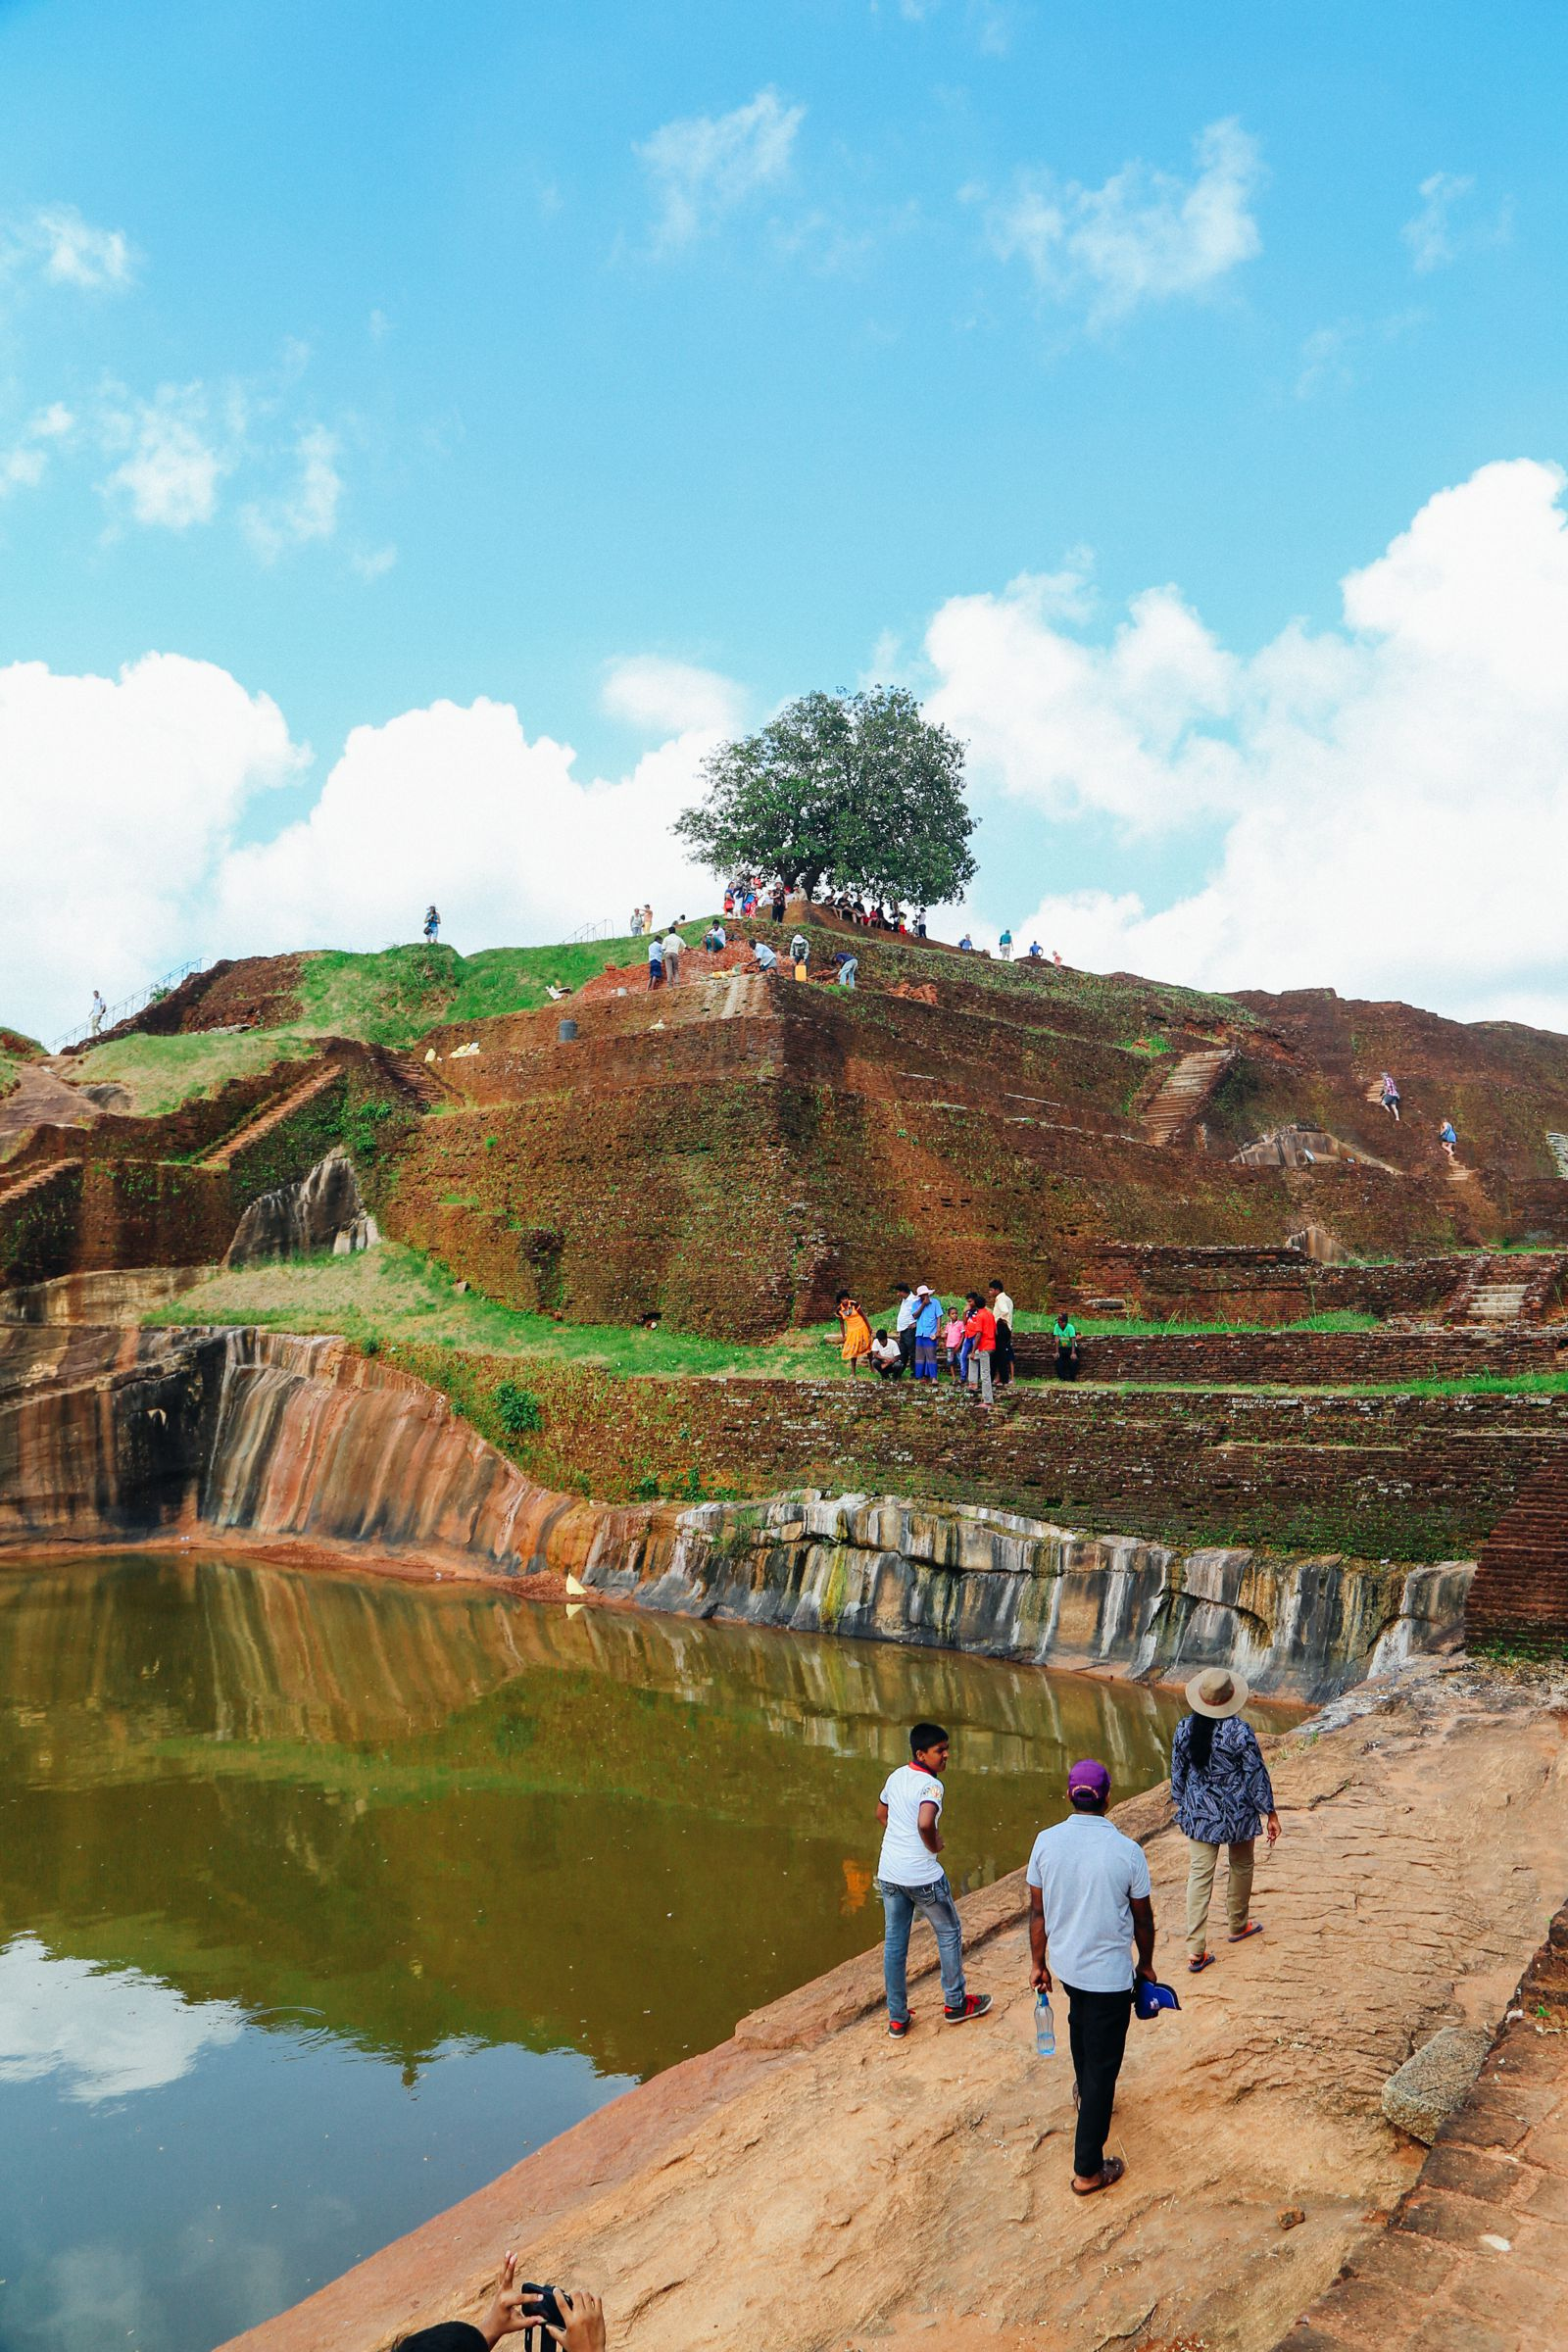 The Complete Guide To Climbing Sri Lanka's UNESCO World Heritage Site Of Sigiriya - Lion Rock (56)